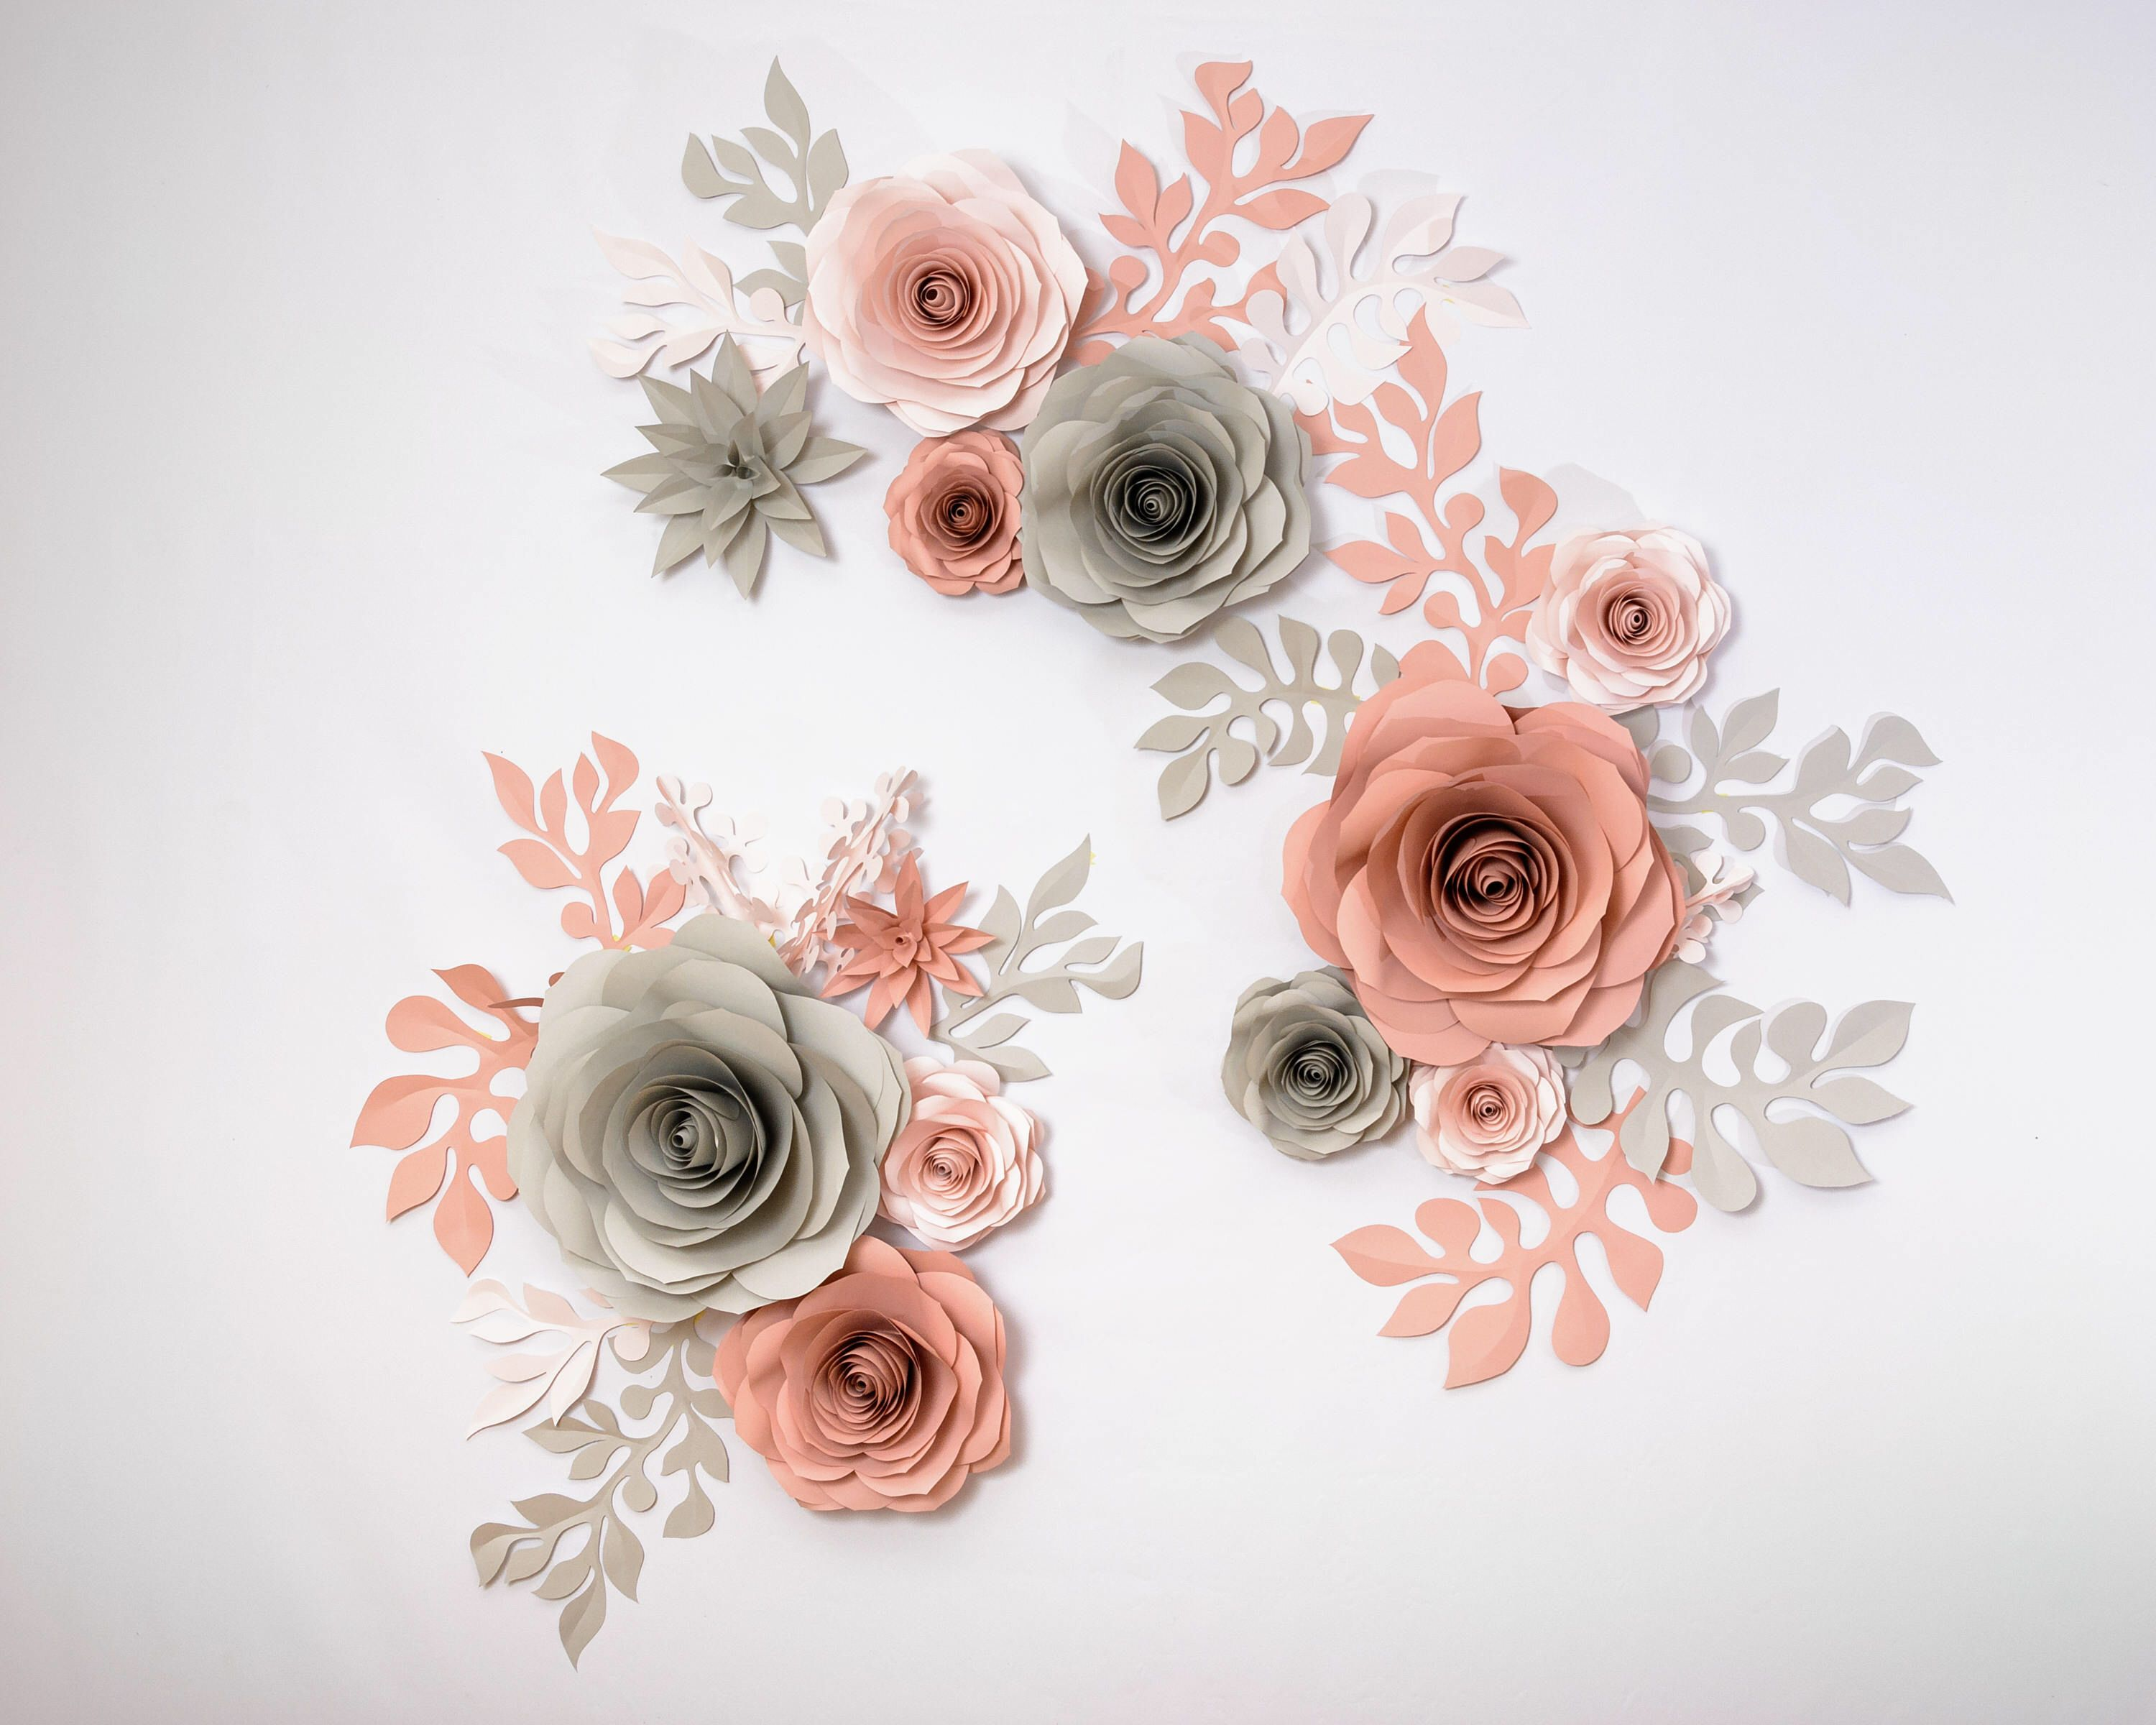 Paper Flower Backdrop Of Gray Pink Blush Roses Large Paper Flowers